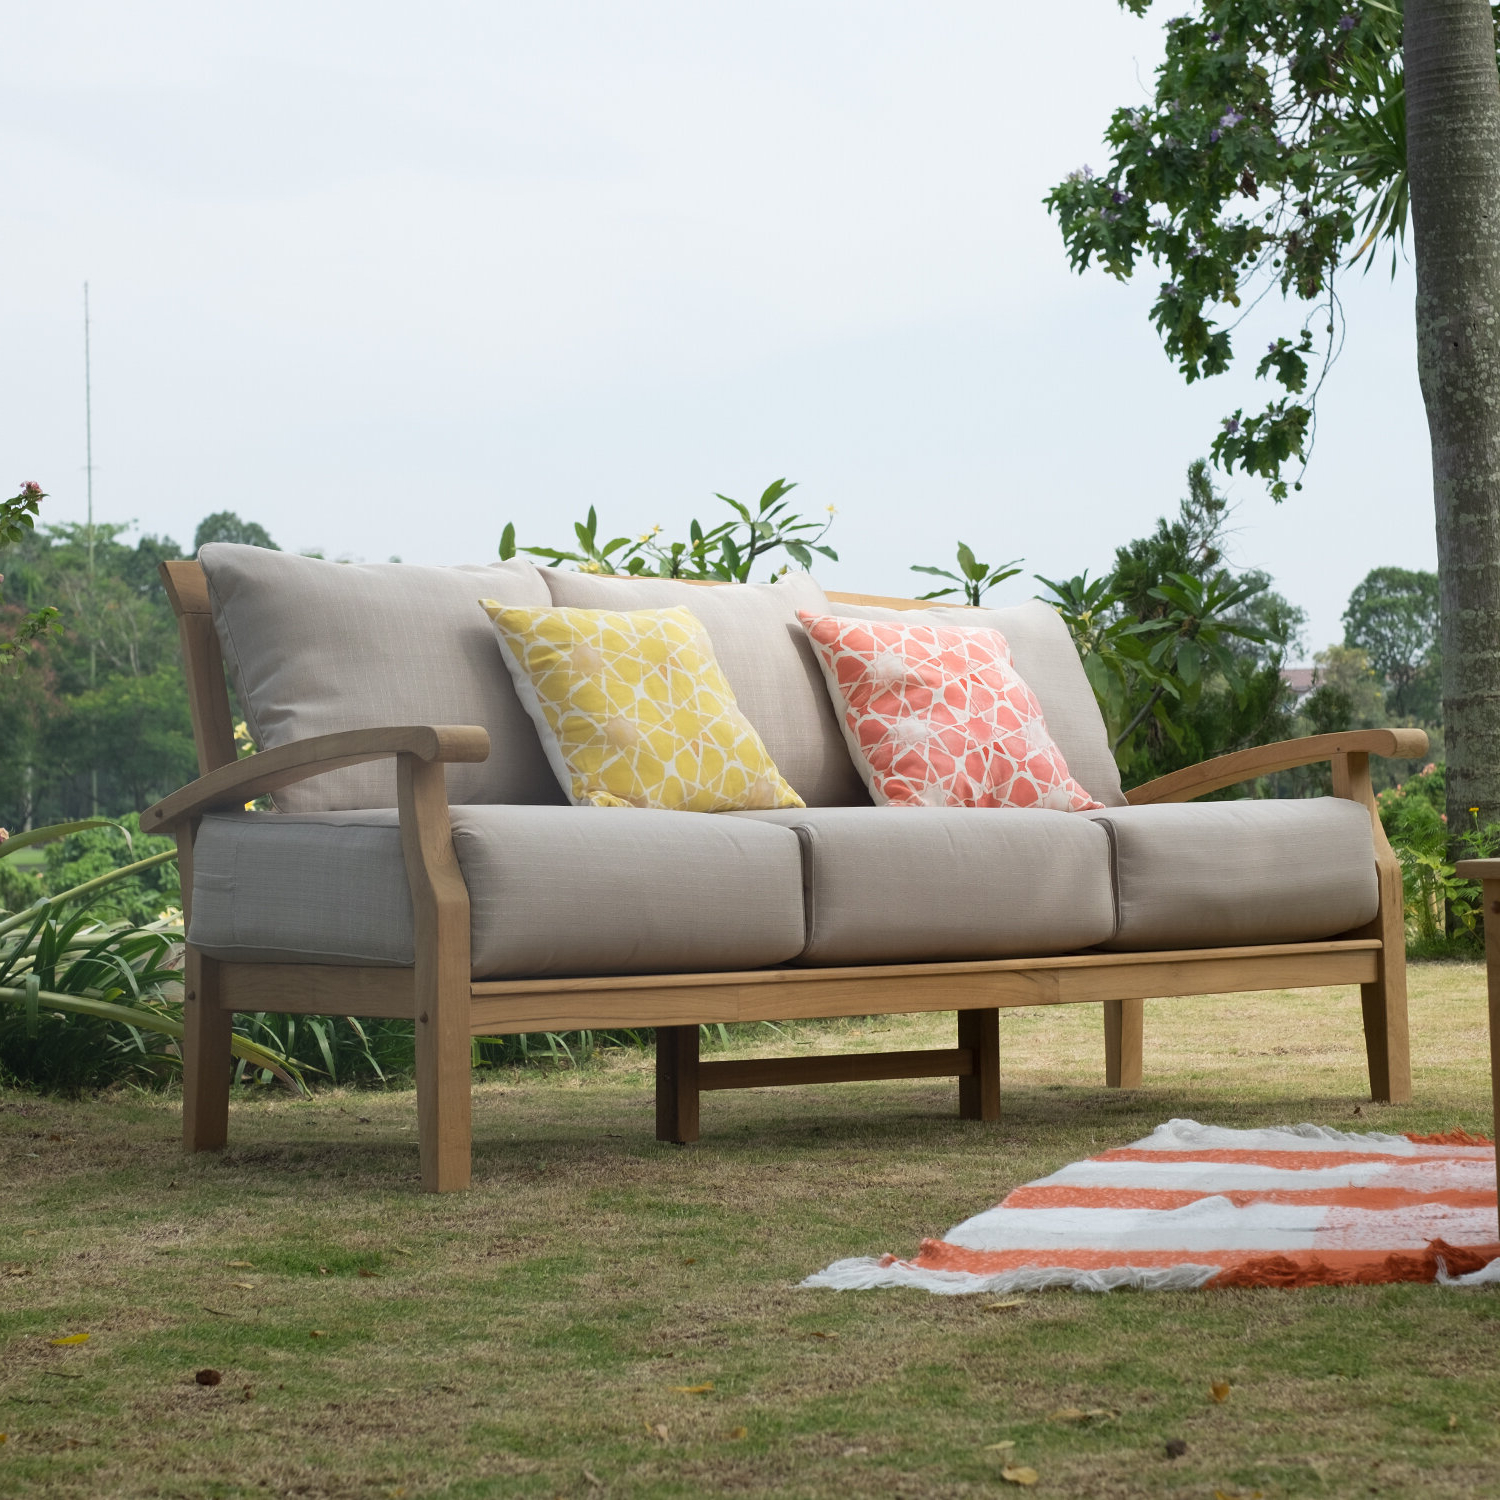 Famous Summerton Teak Patio Sofa With Cushions Inside Mansfield Teak Loveseats With Cushion (View 11 of 20)